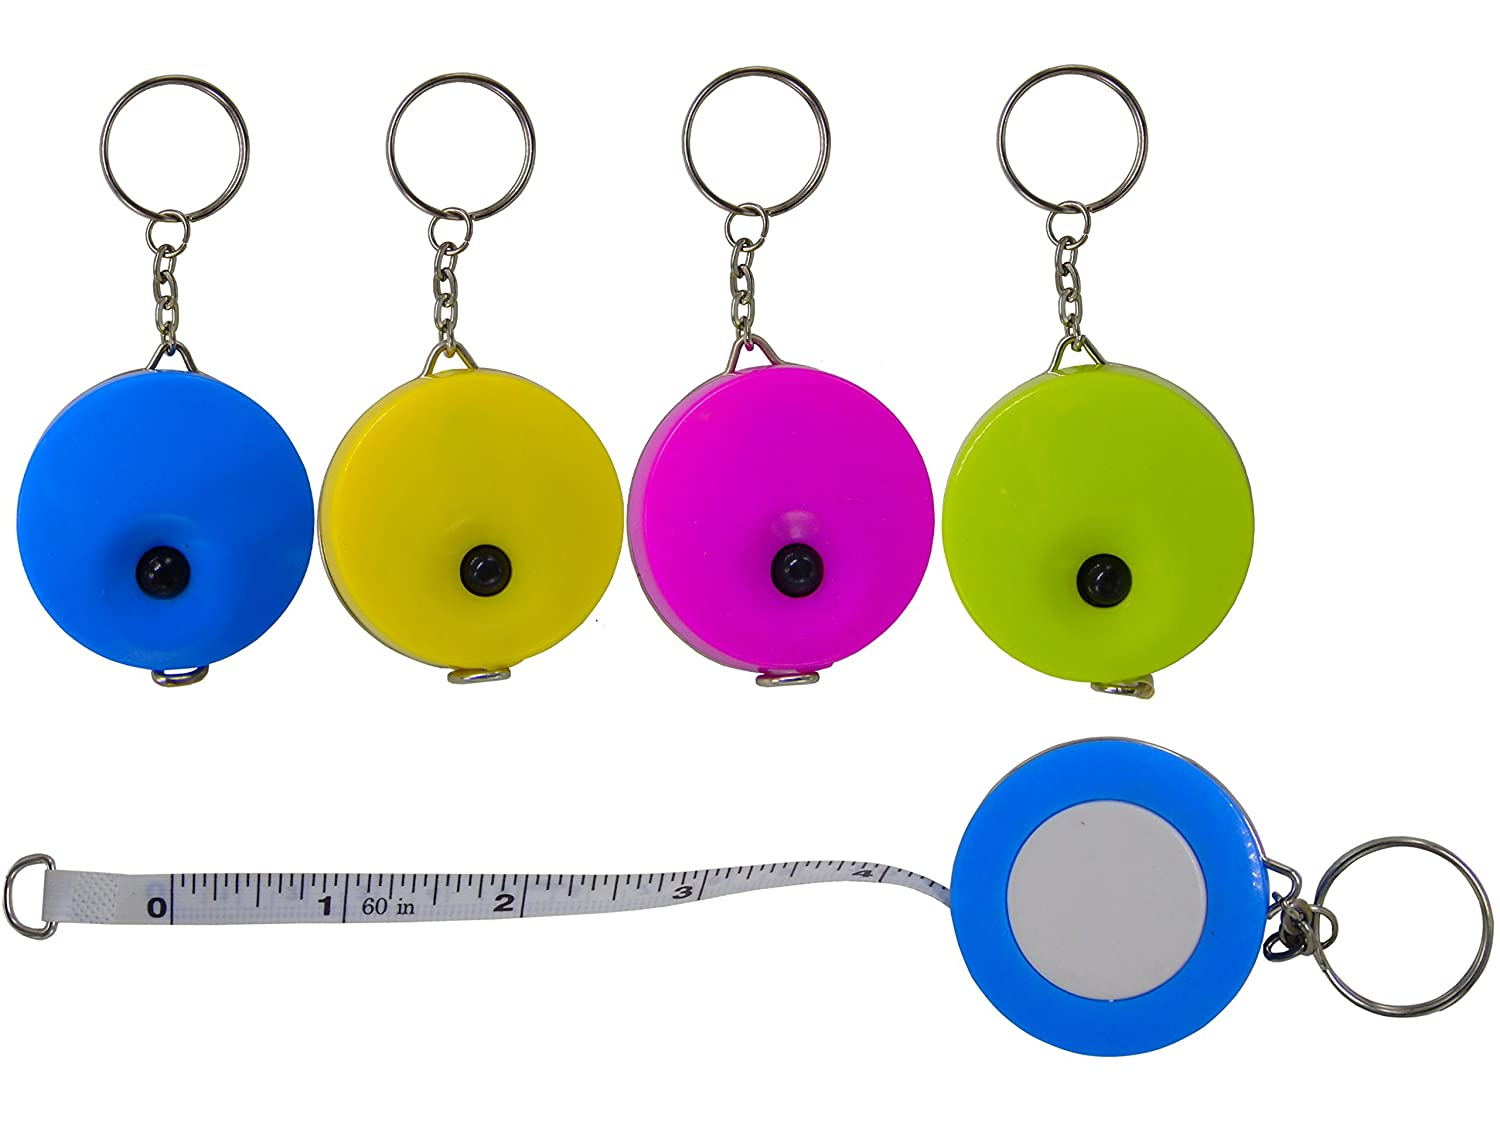 Lontenrea 5 Pack 60-Inch Soft and Retractable Tape Measure With Keychain for Tailor Sewing Body Measure Tape Lontenrea01